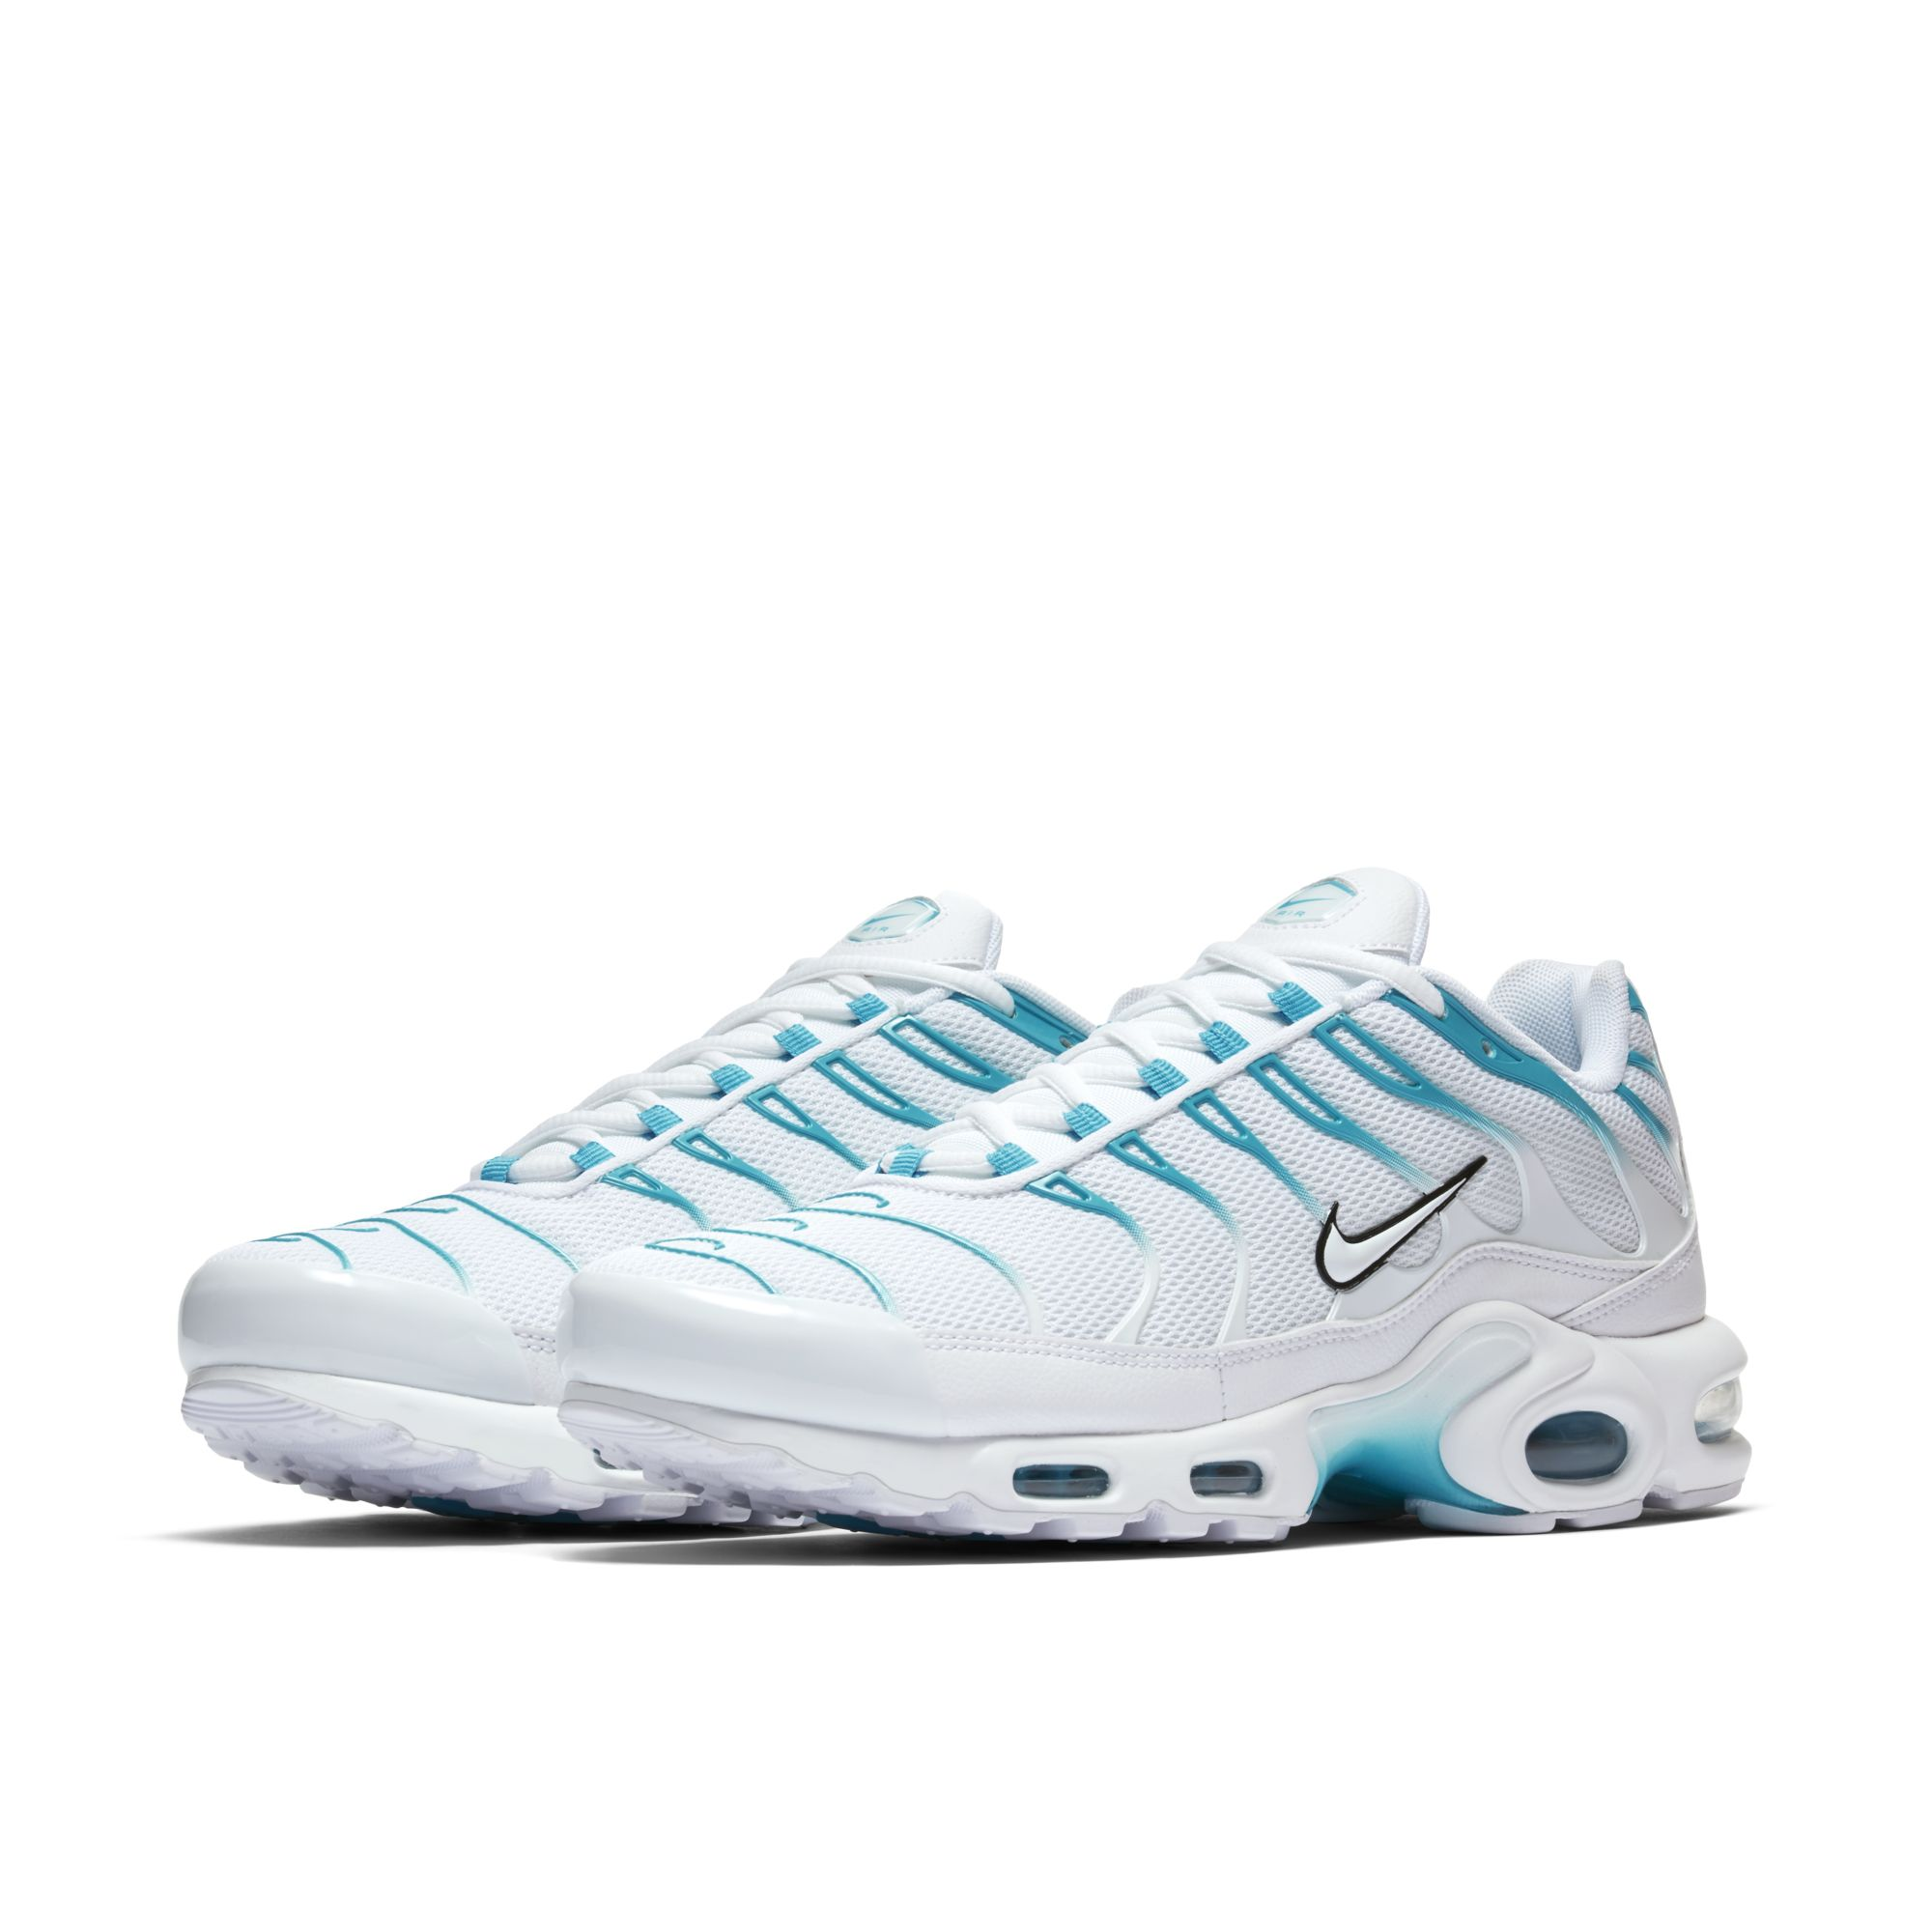 sale retailer 560b5 89cde Look Out for This Clean Nike Air Max Plus Colorway - WearTesters